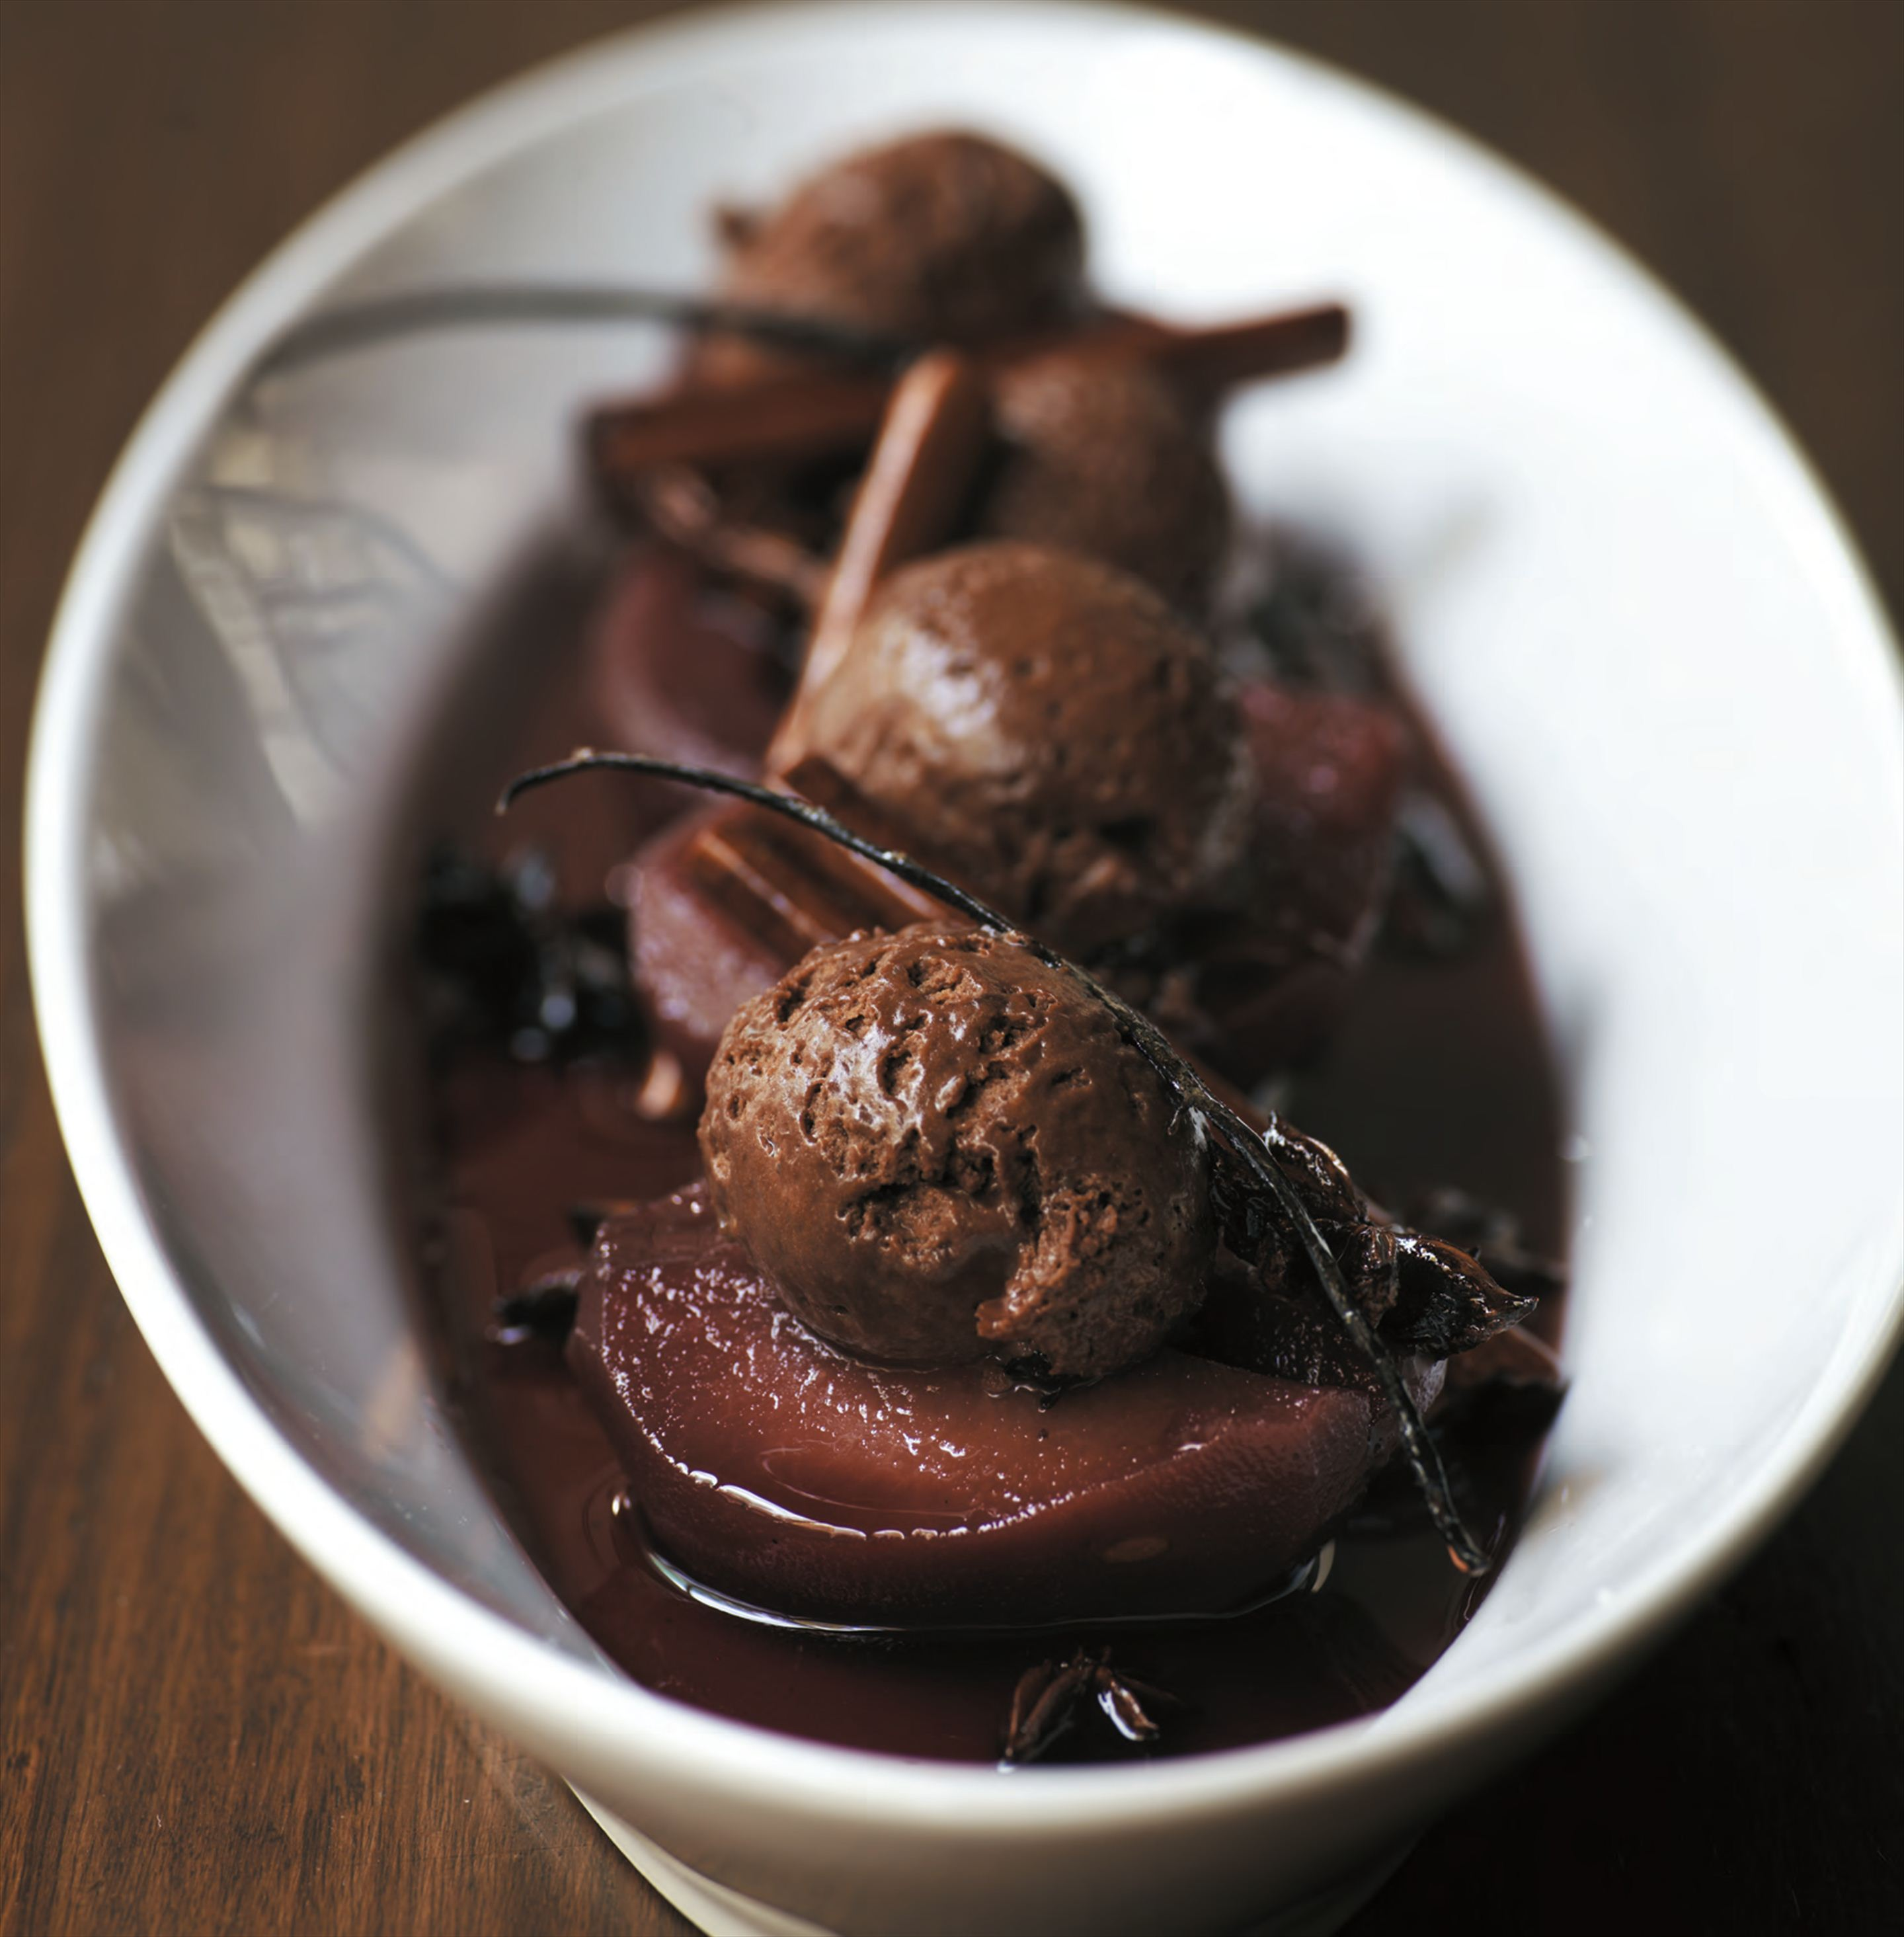 Quinces poached in spiced wine with chestnut and chocolate mousse